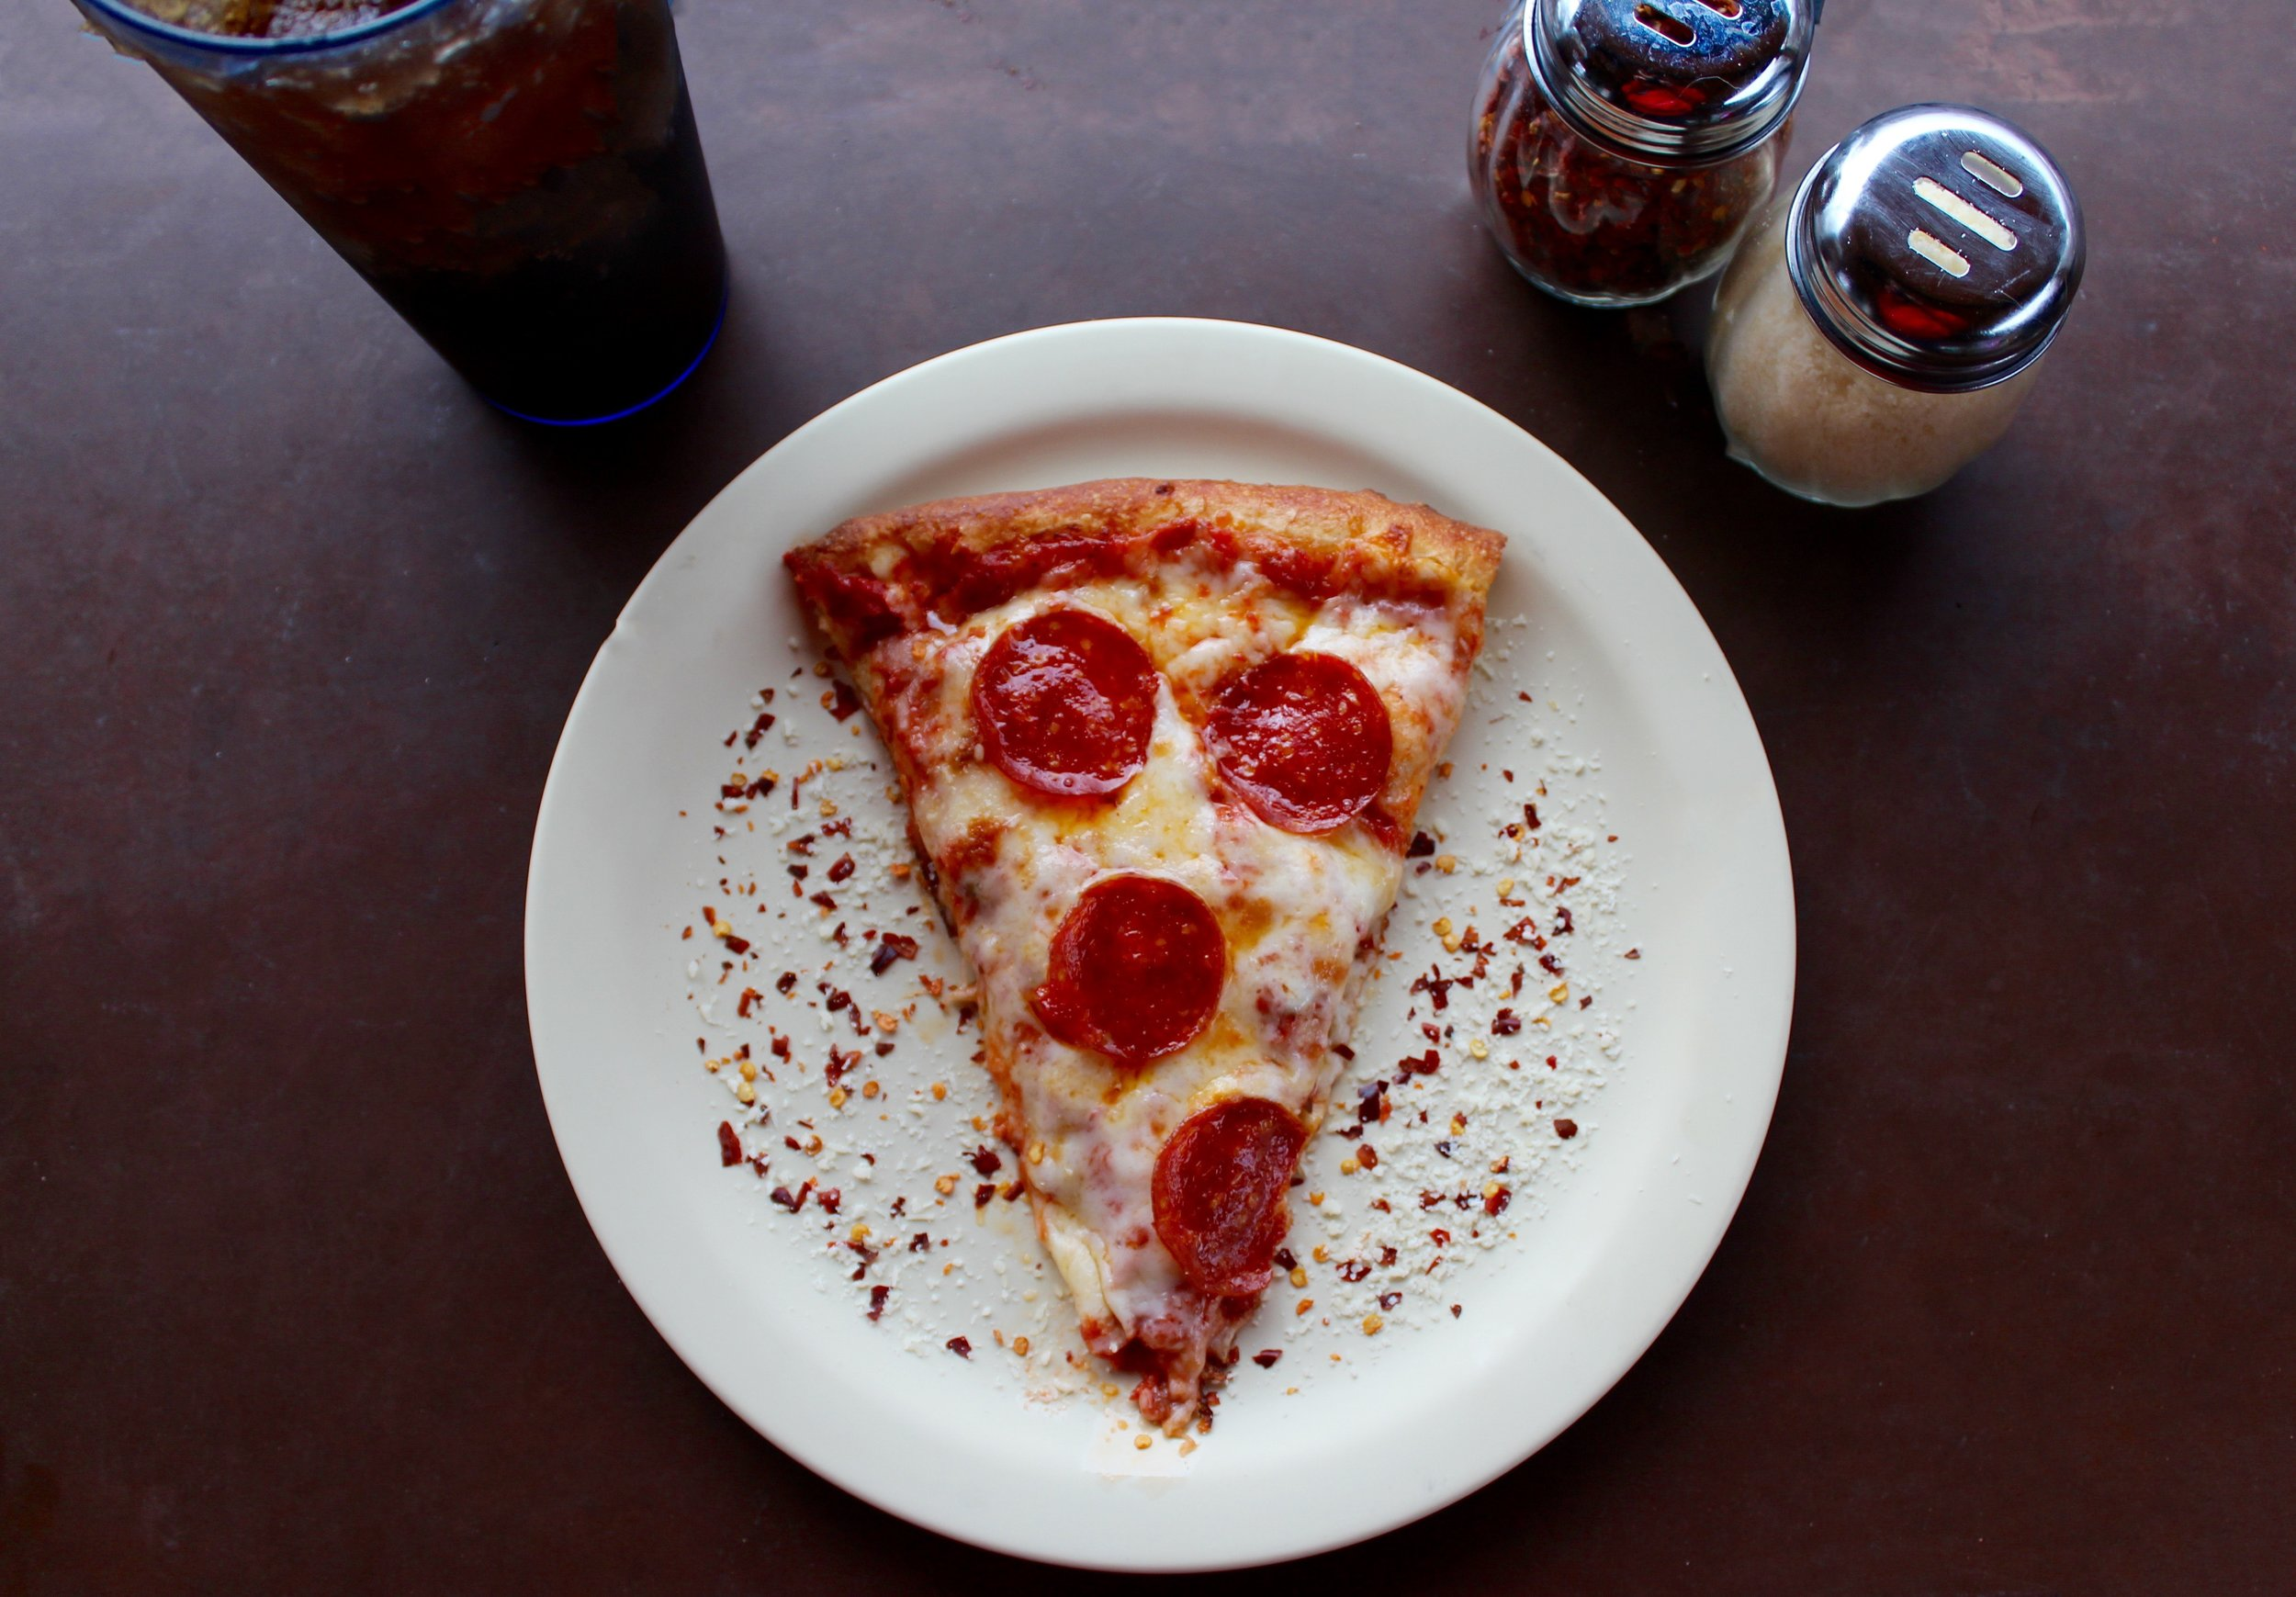 A slice of pepperoni pizza with a soda and parmesan shakers.